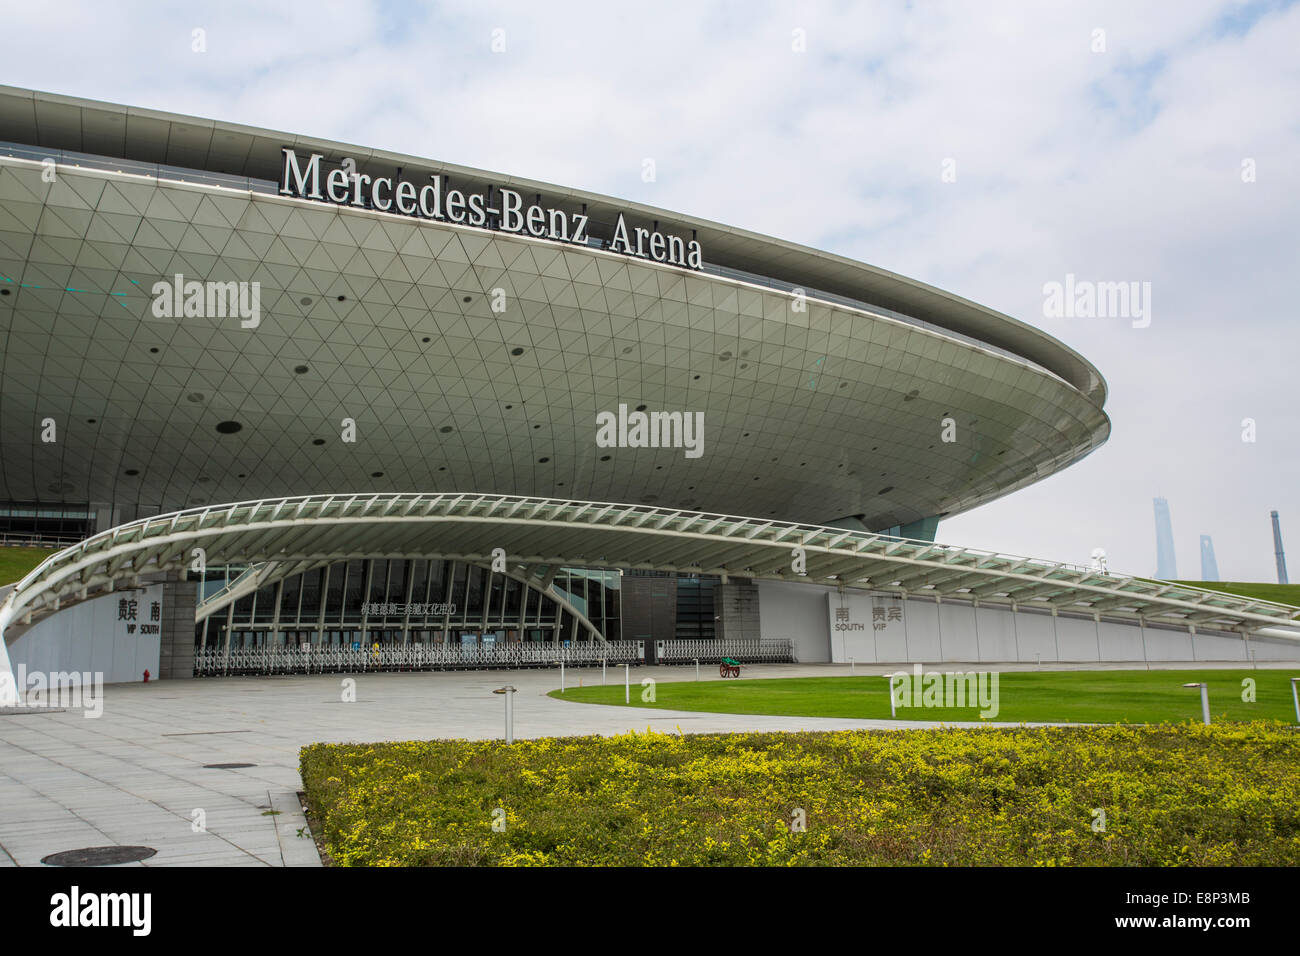 mercedes benz arena shanghai china stock photo 74244587 alamy. Black Bedroom Furniture Sets. Home Design Ideas